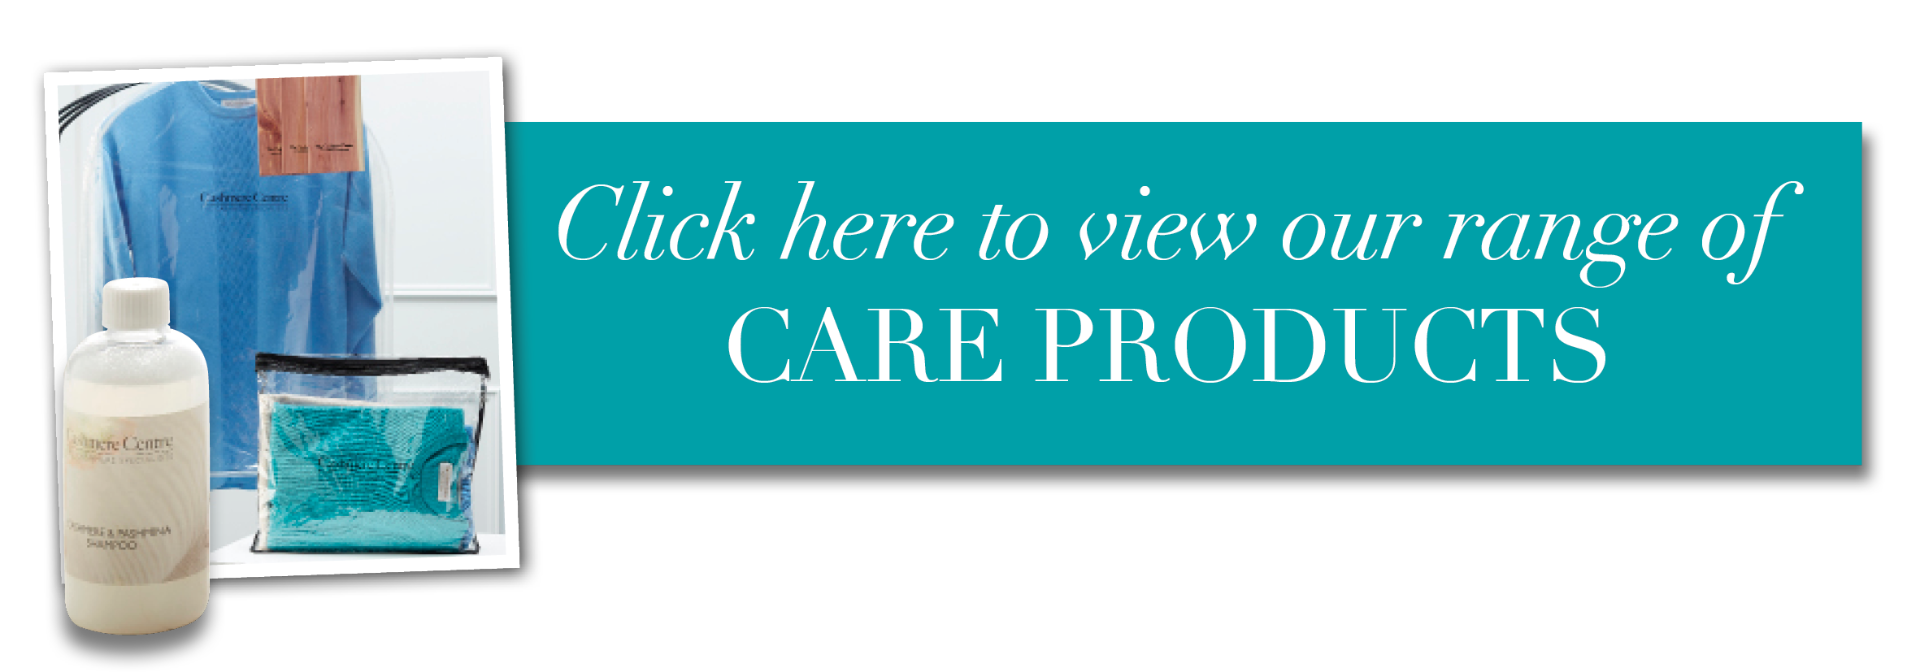 Click to view cashmere care products